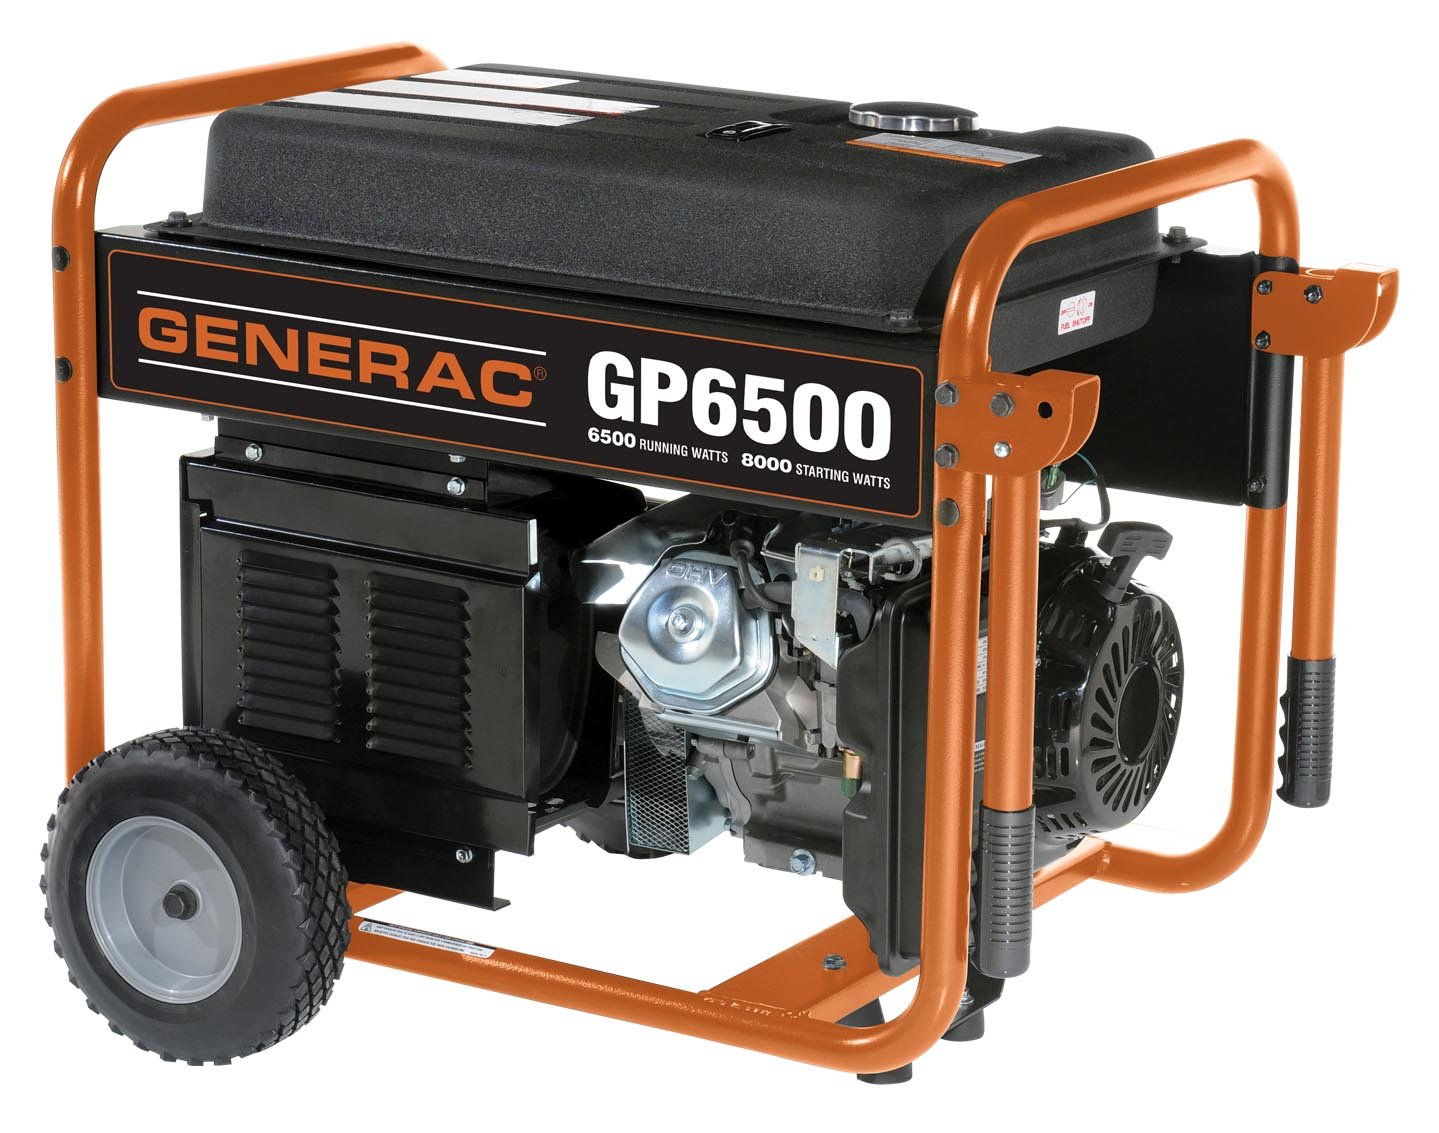 portable generators. Generac Portable Generators. Amazon.com : 5976 Gp6500 6500 Running Watts/8000 Generators A